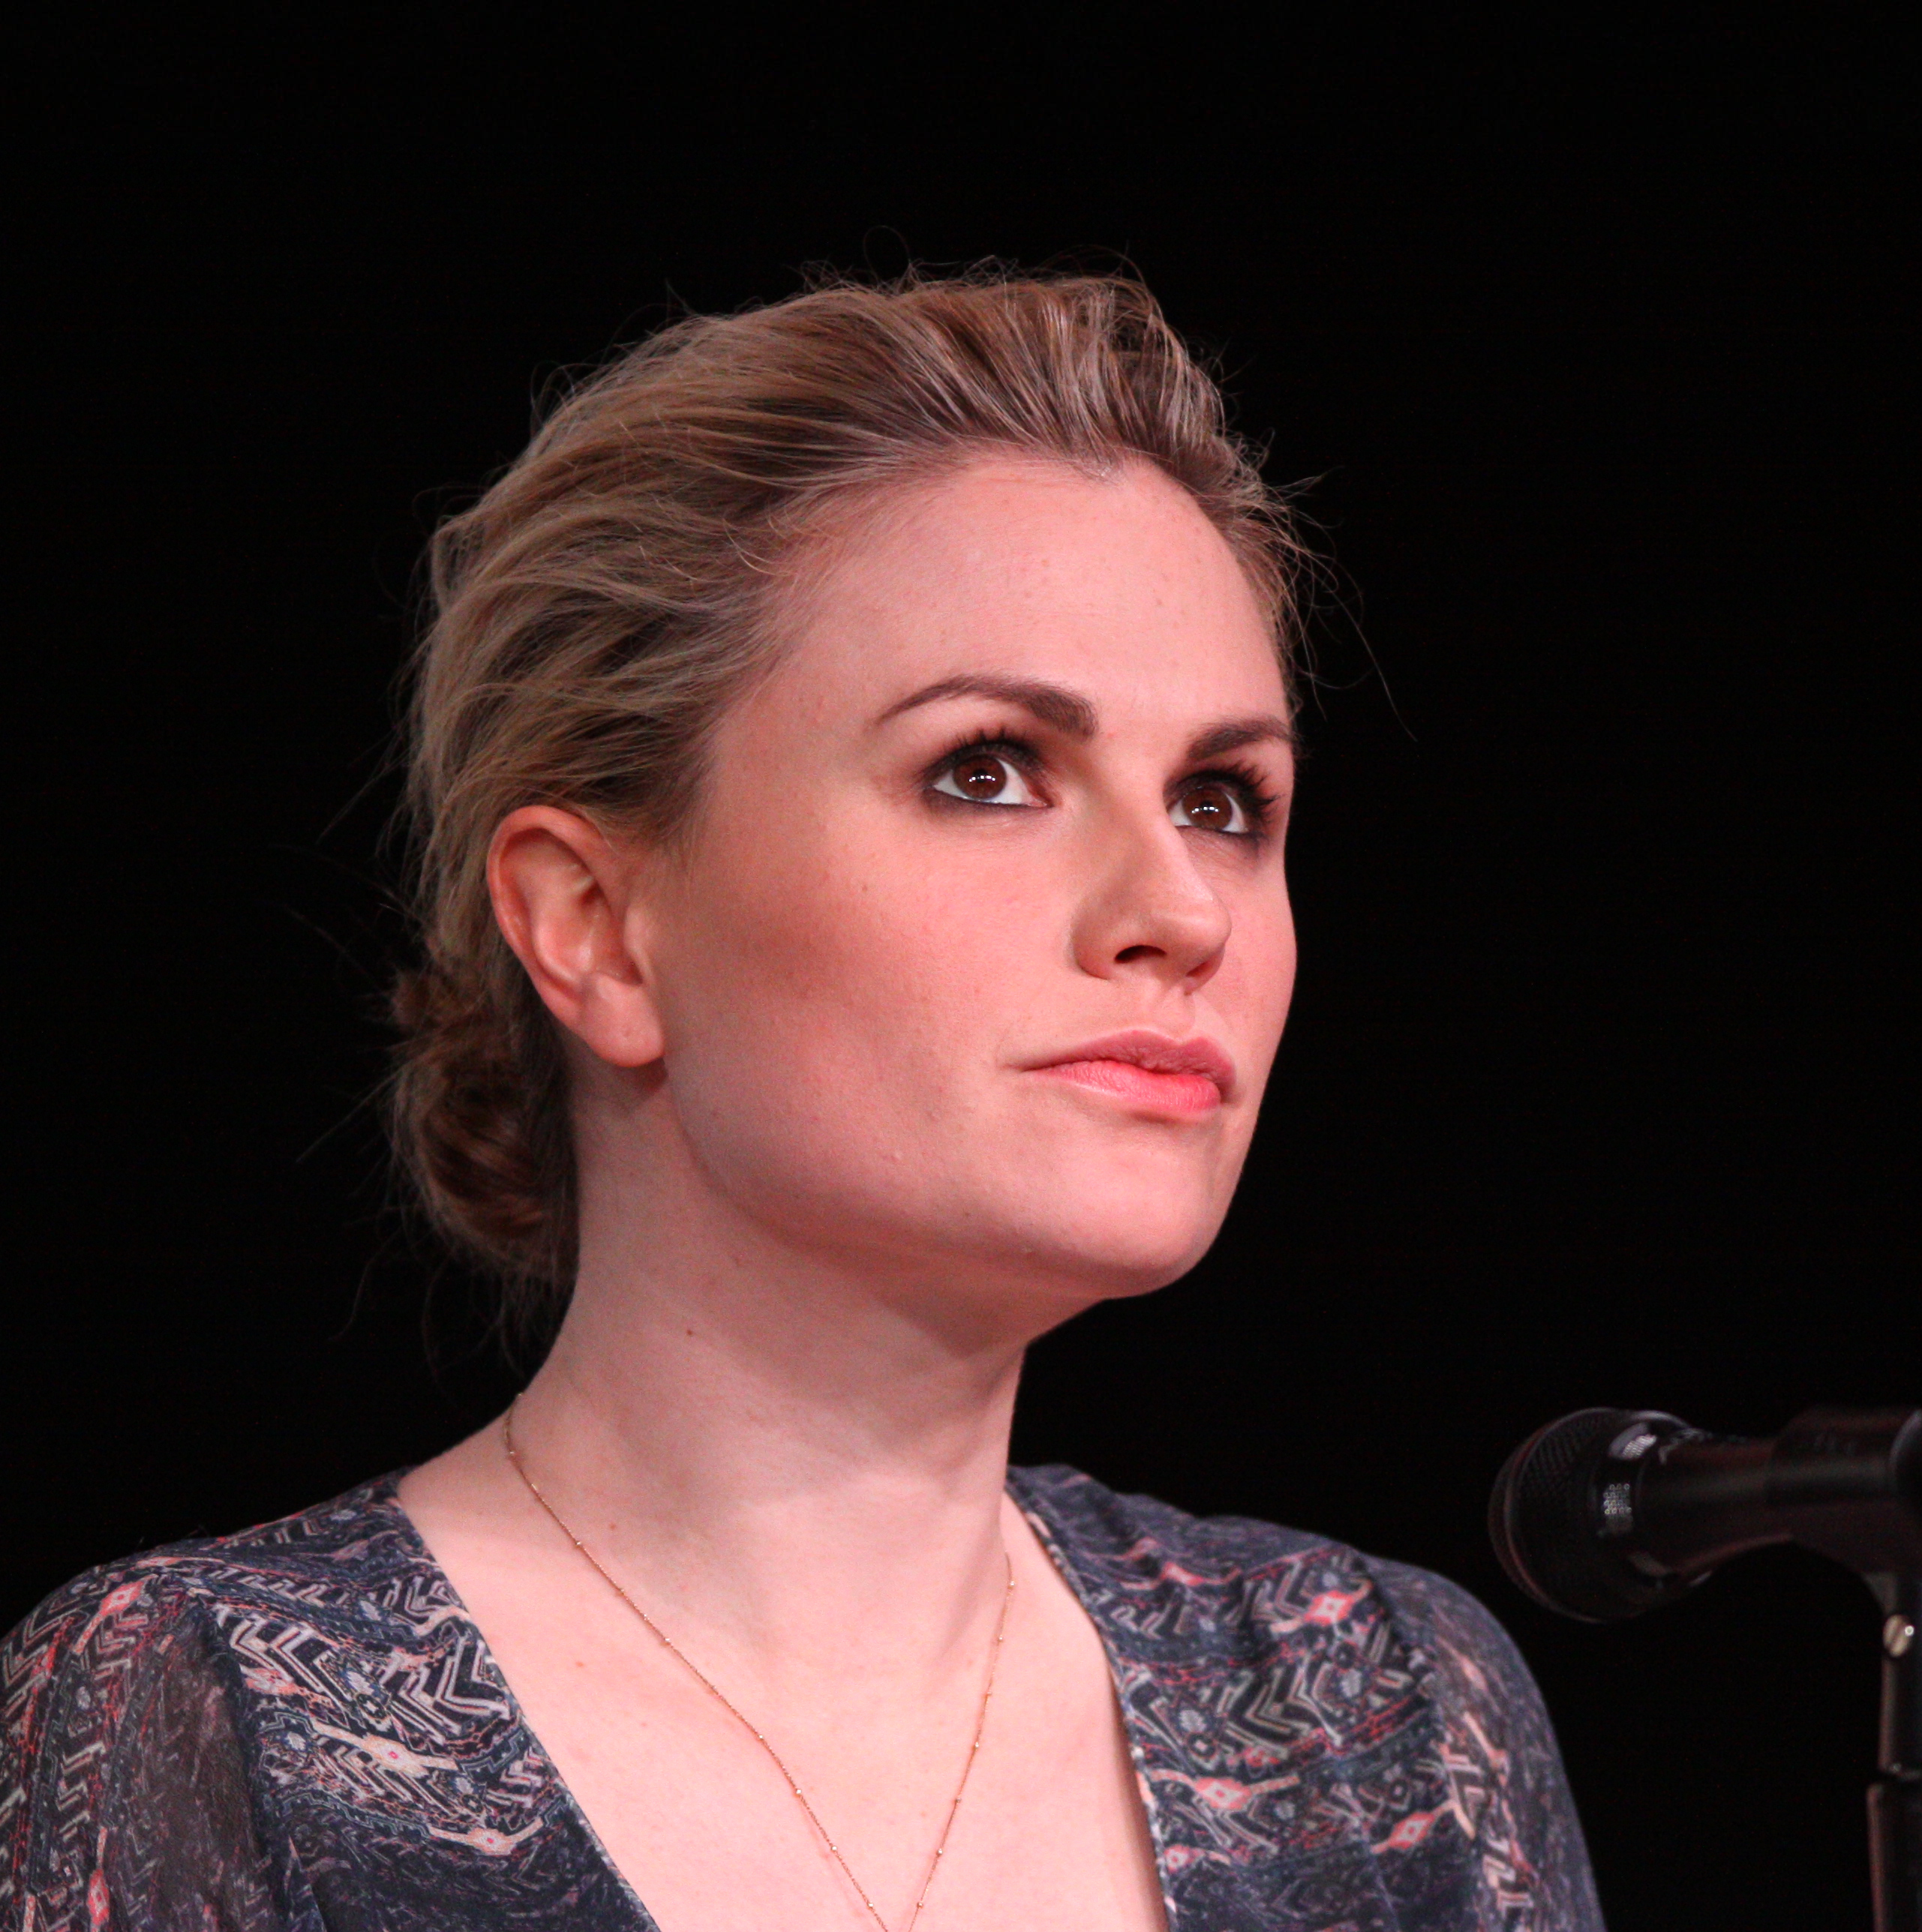 Anna_Paquin_by_Gage_Skidmore